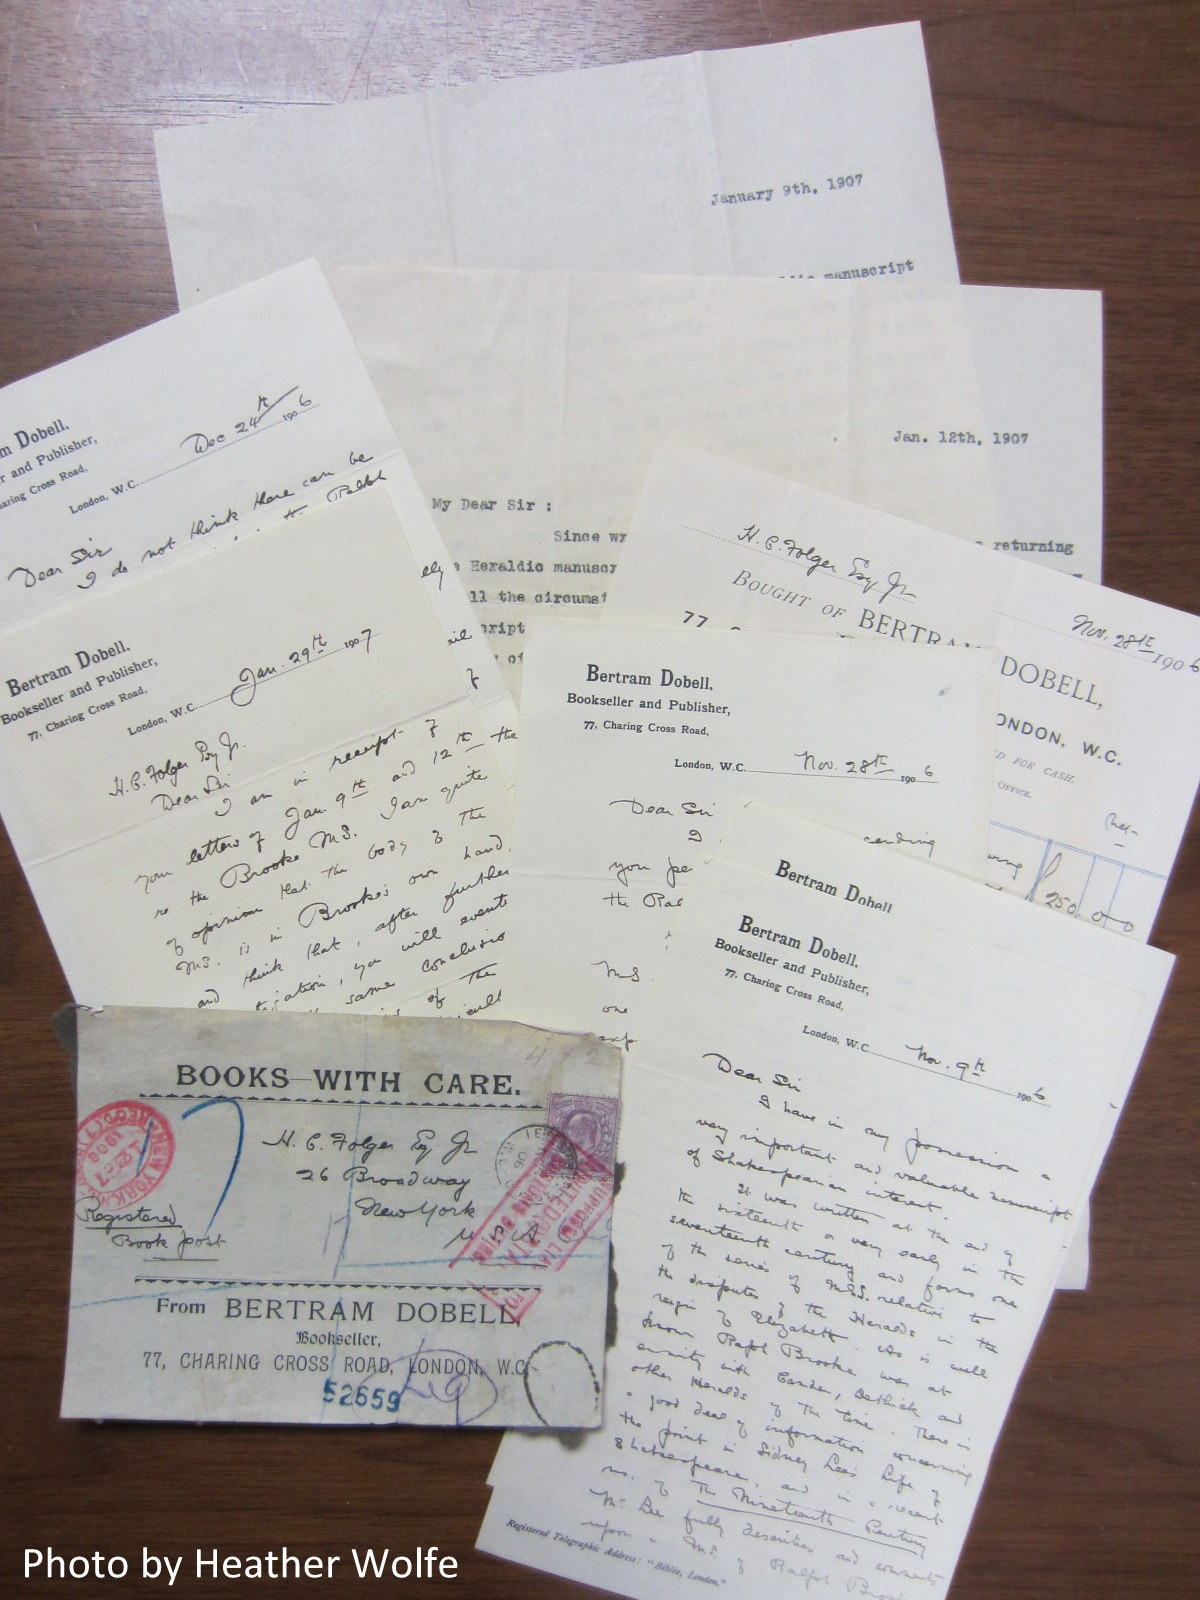 Correspondence between Bertram Dobell and Mr. Folger, November 9, 1906 to January 29, 1907.